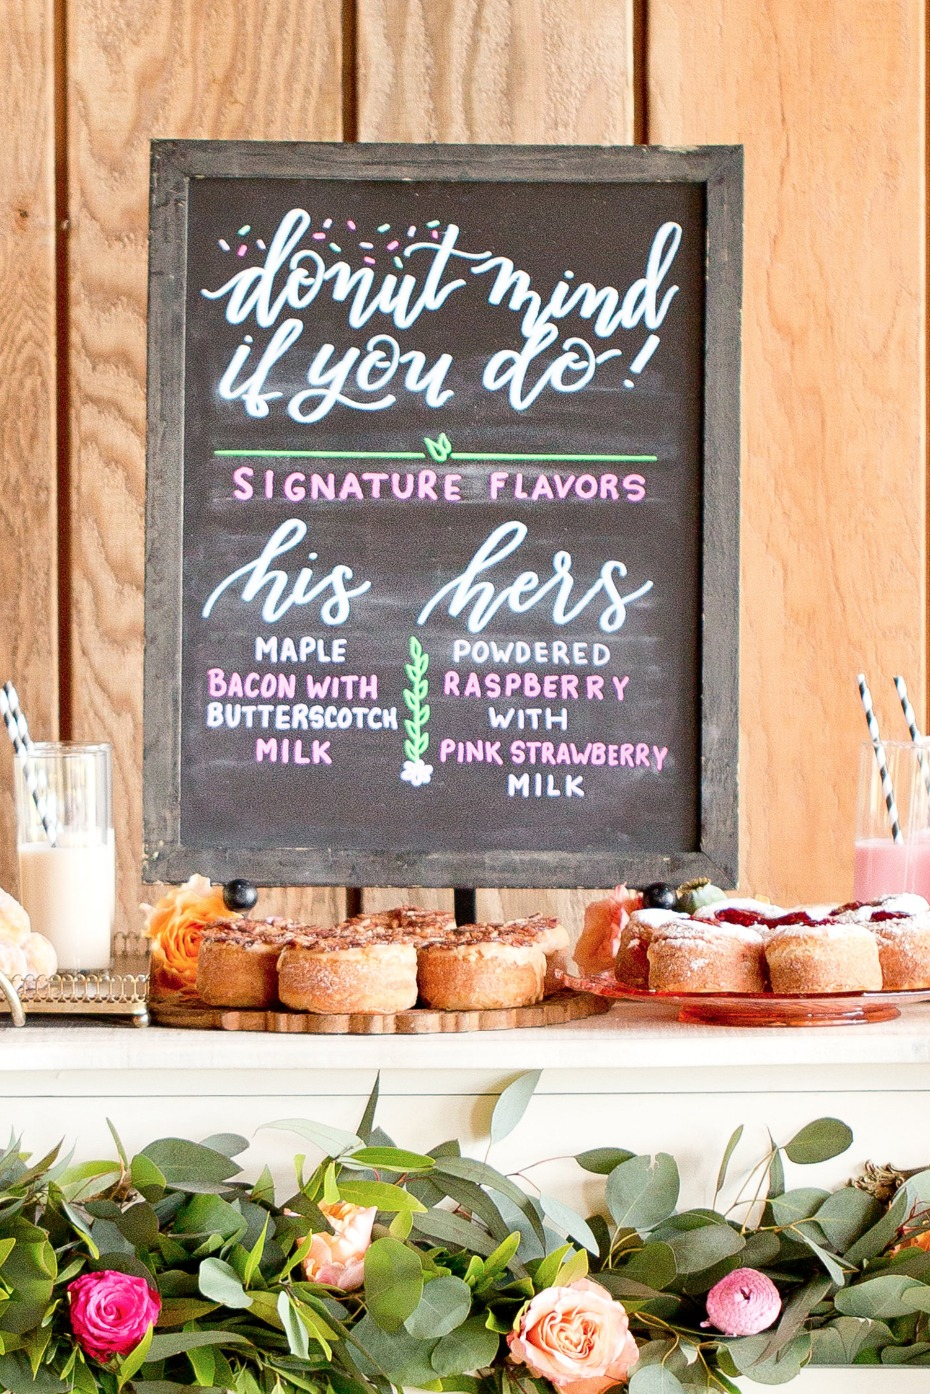 His and Her Donut buffet sign